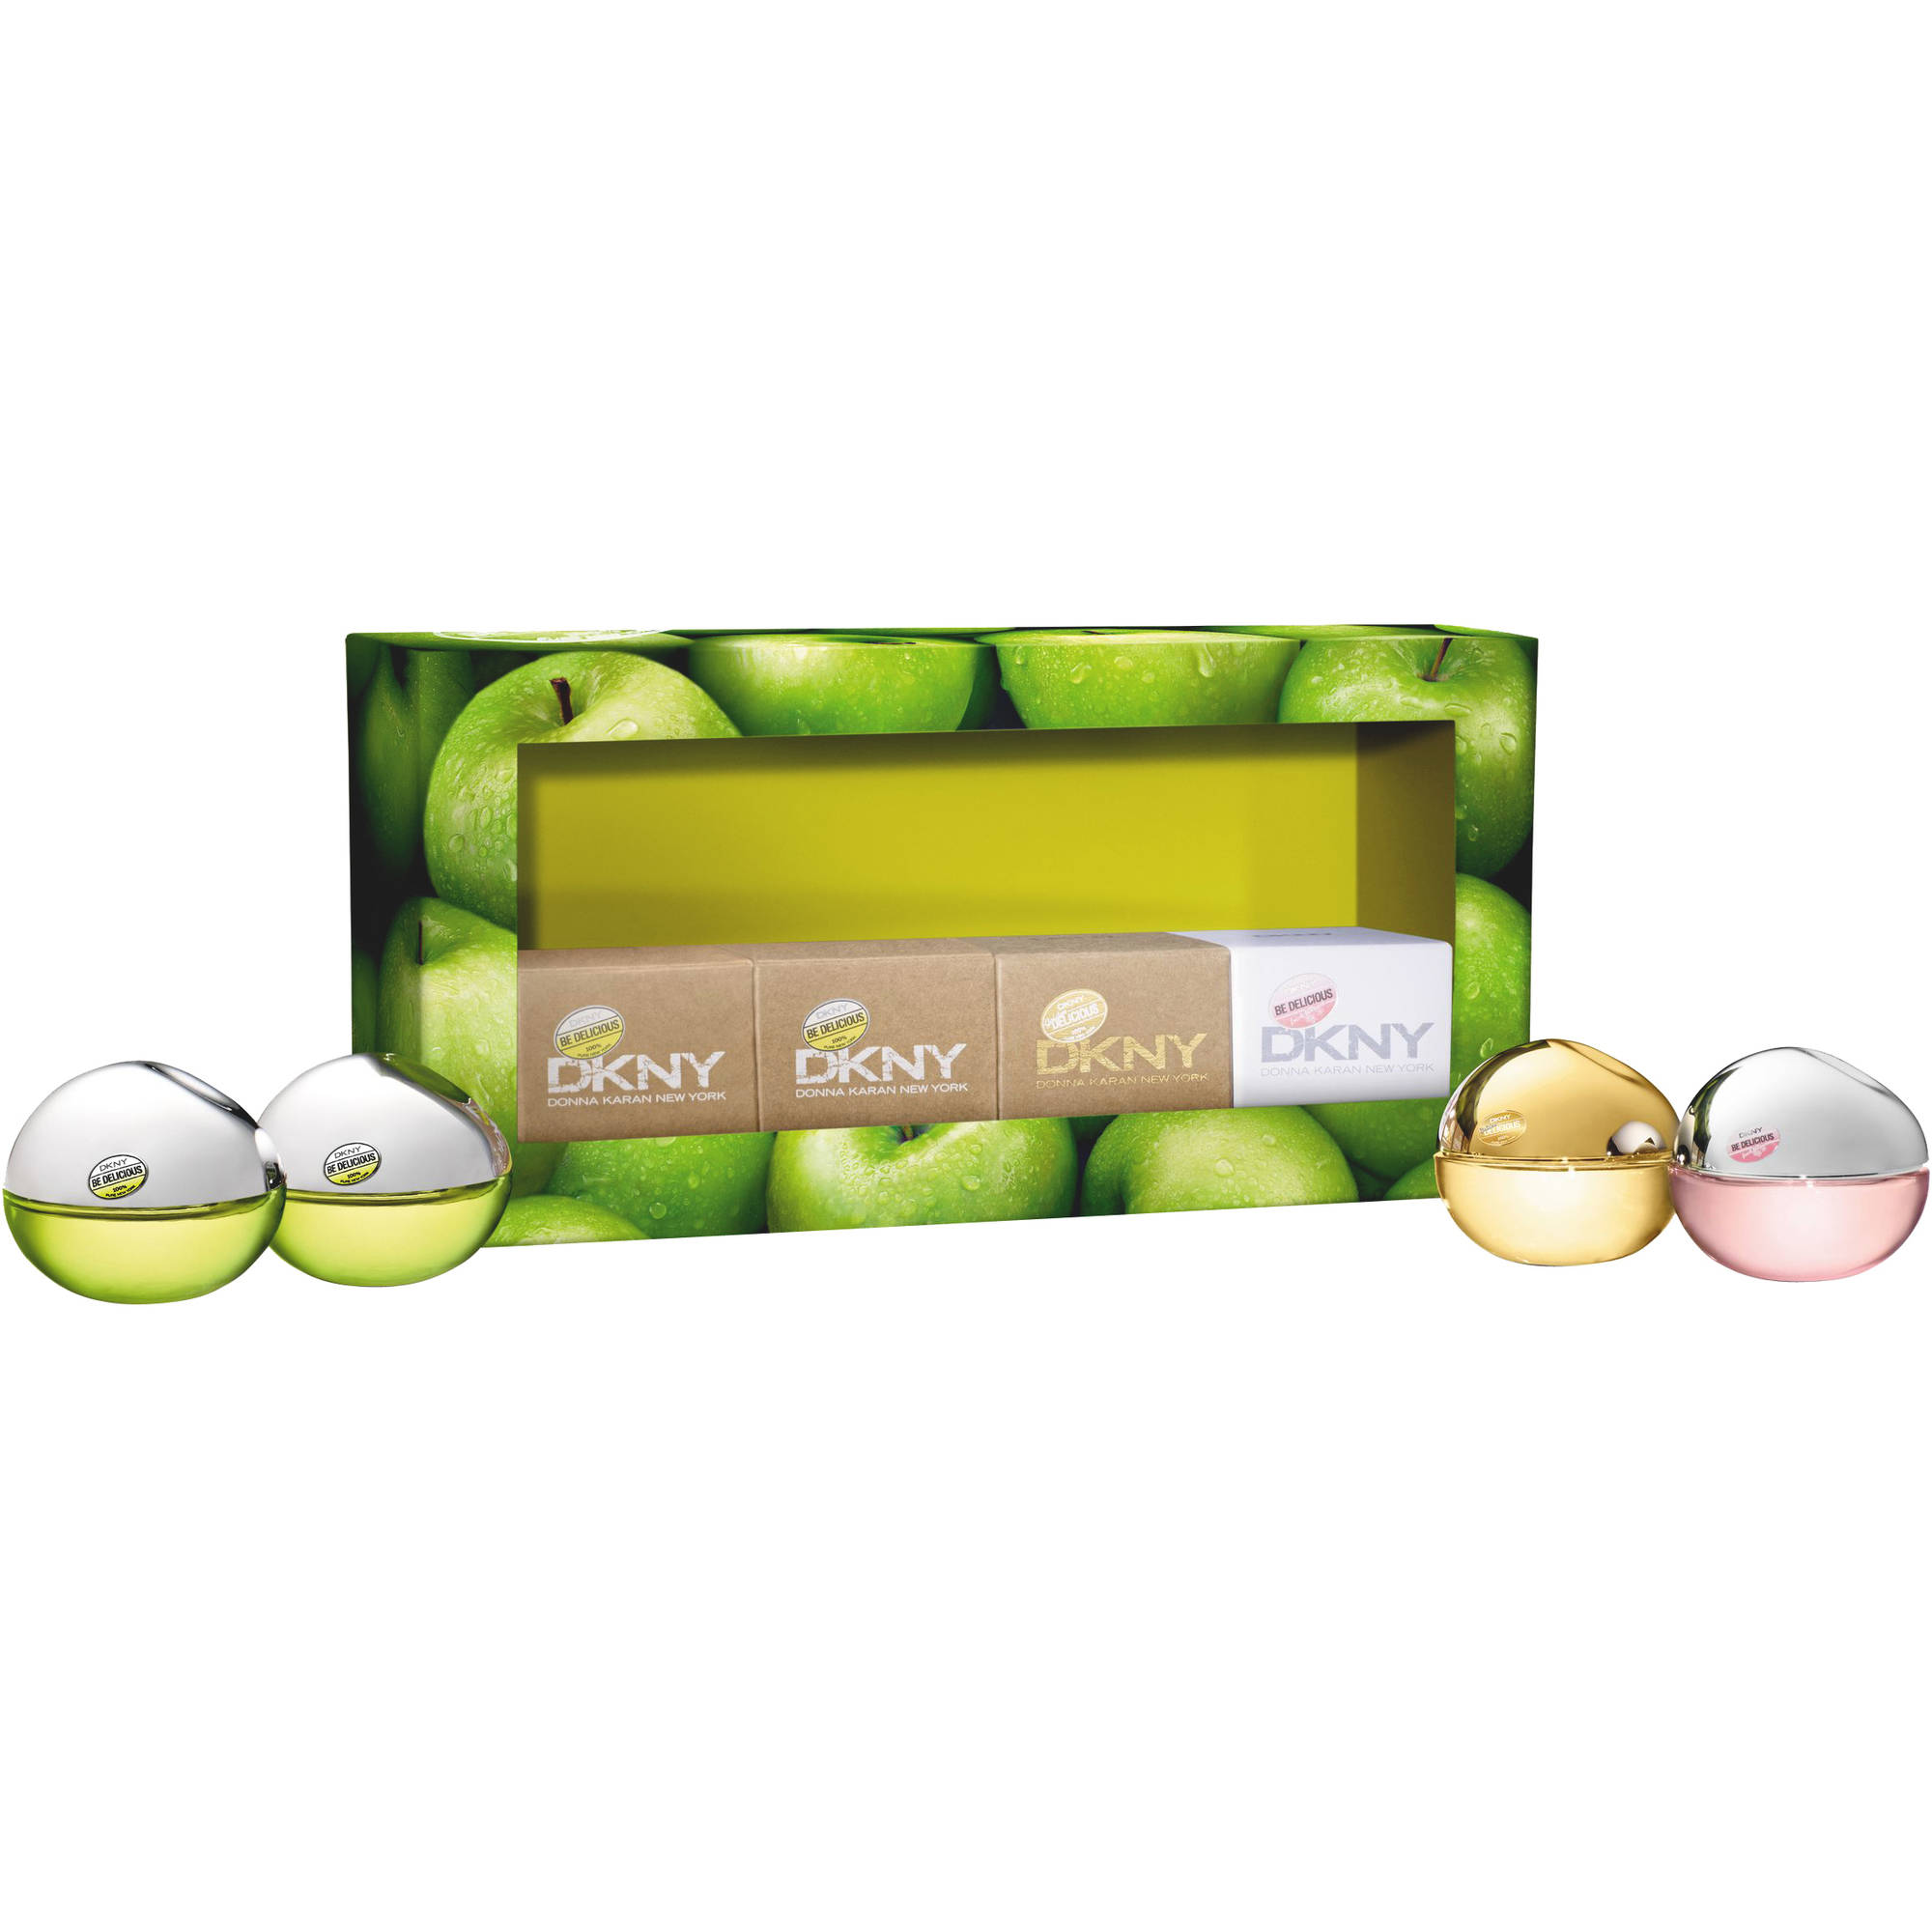 Dkny Fragrance Collection Perfume for Women Gift Set, 4 Pc